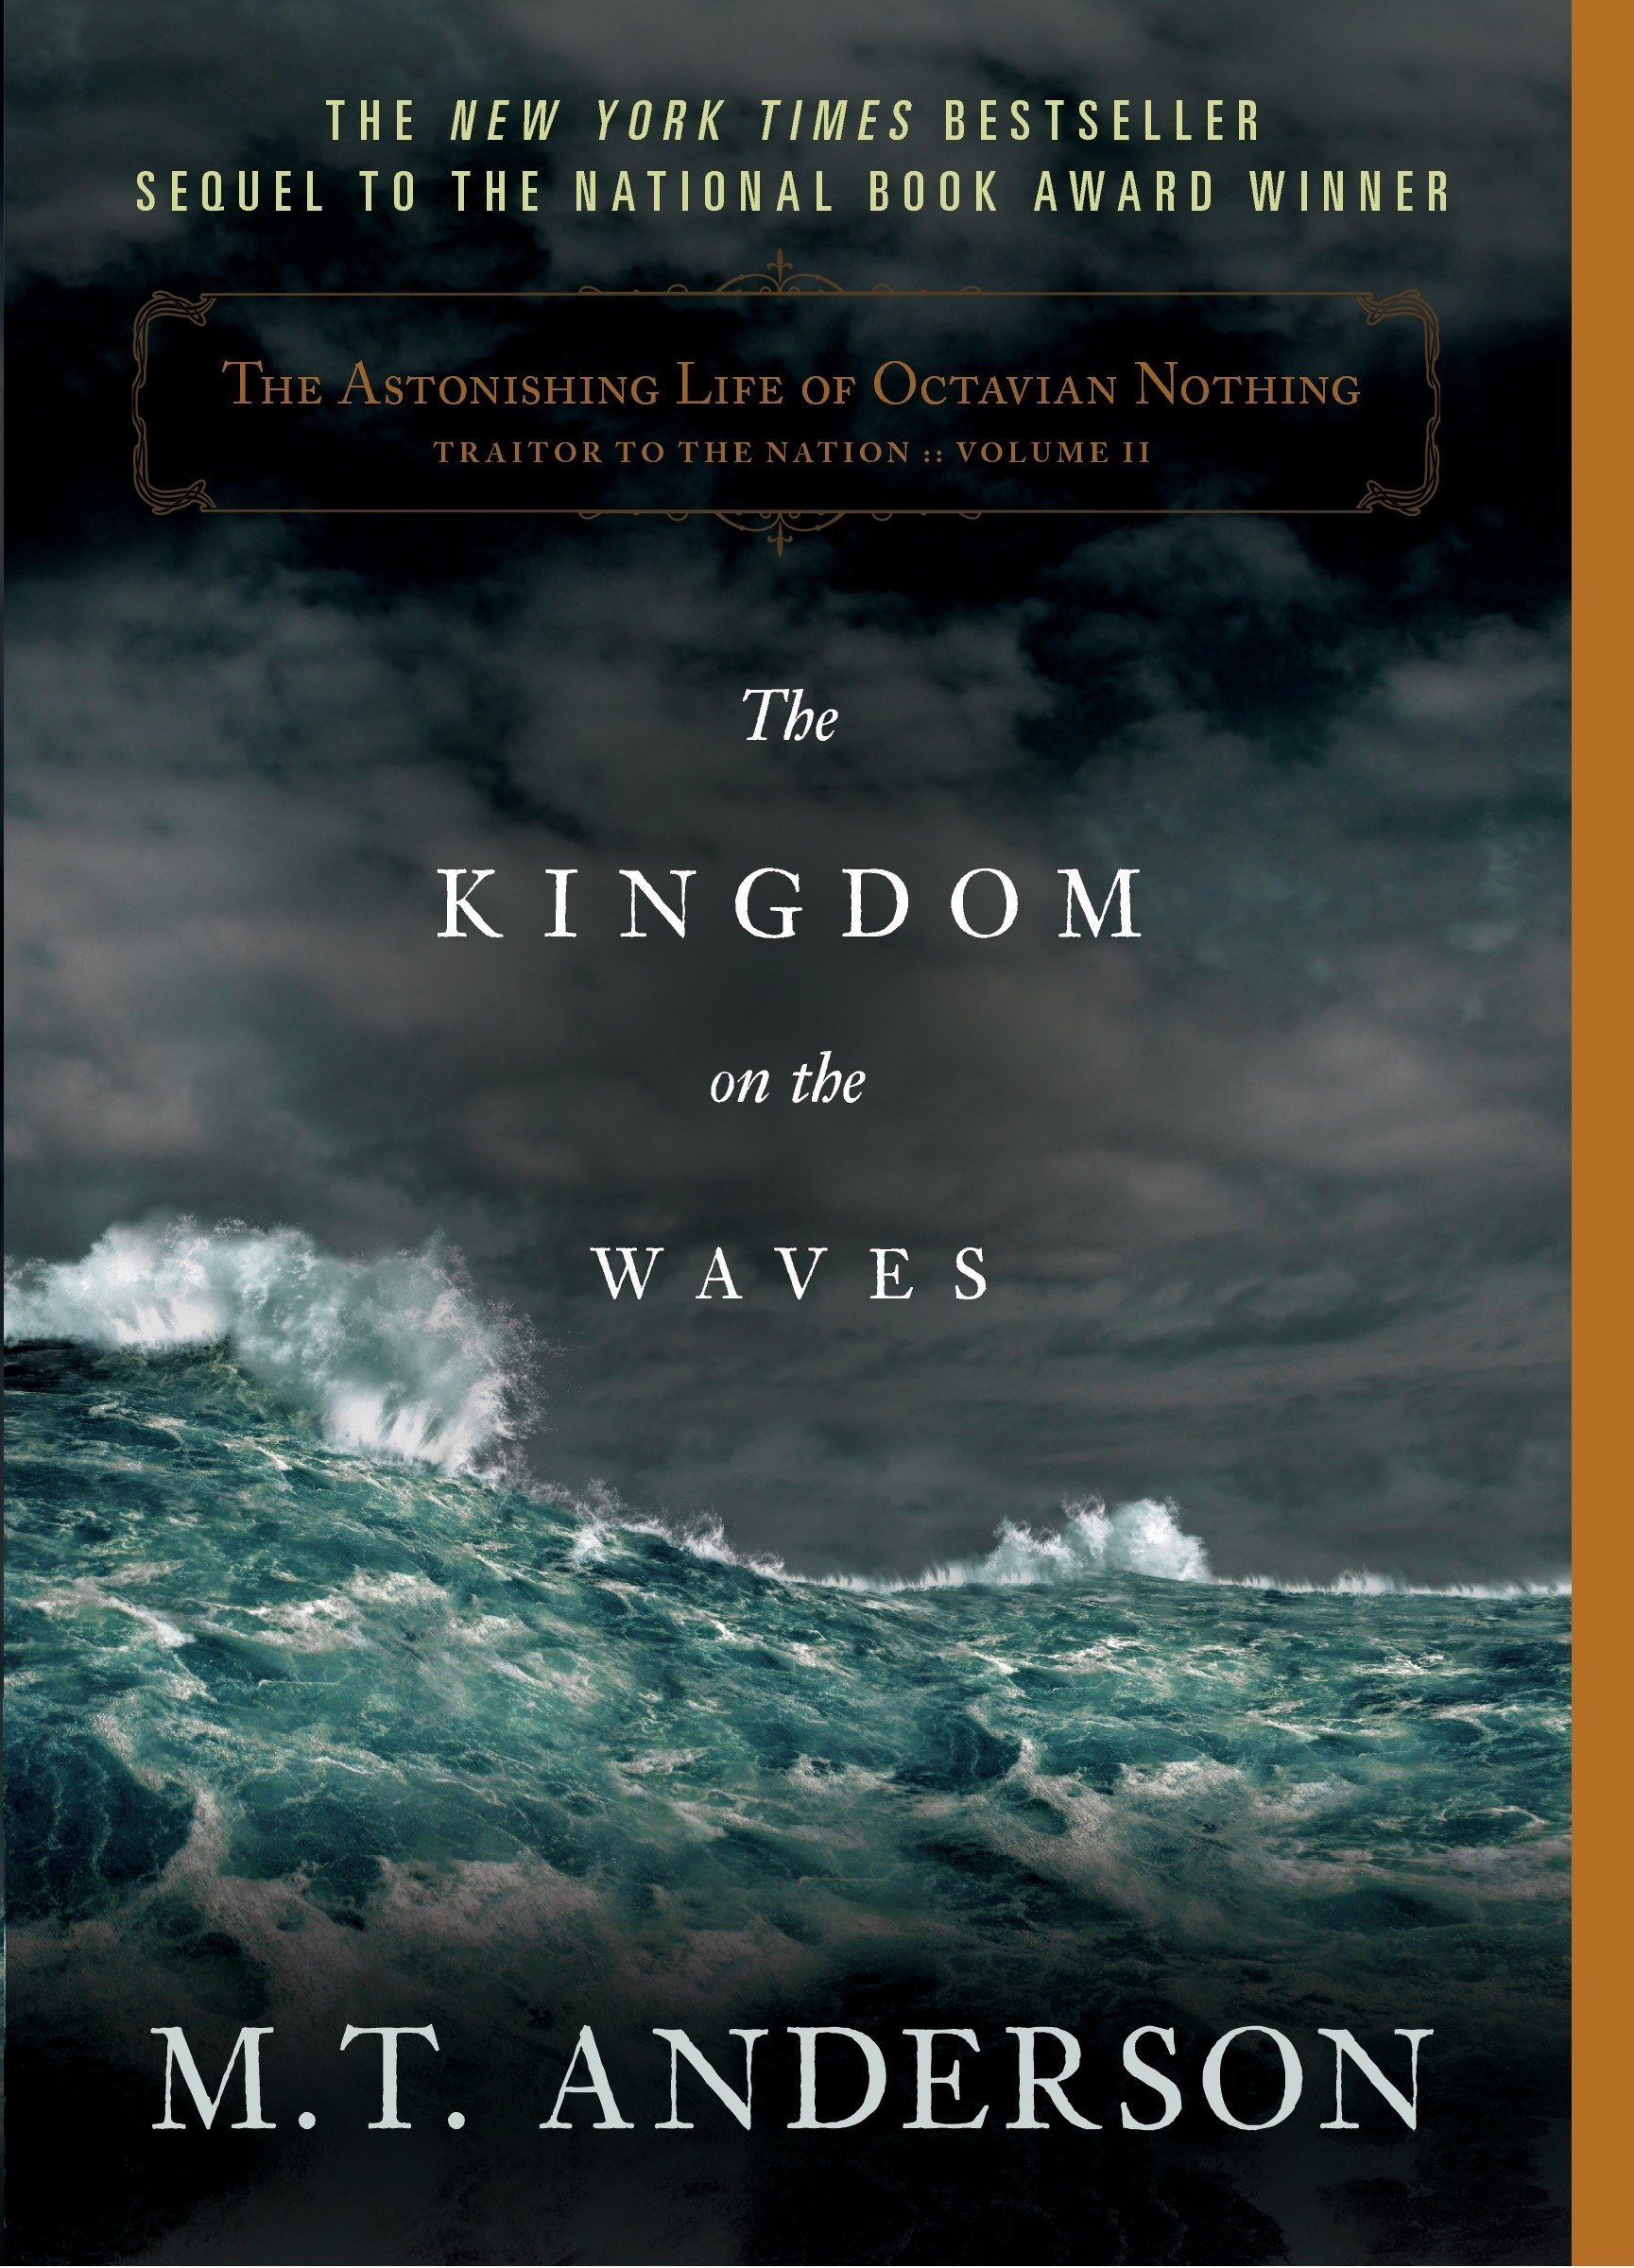 The Astonishing Life of Octavian Nothing, Traitor to the Nation, Volume II: The Kingdom on the Waves pdf